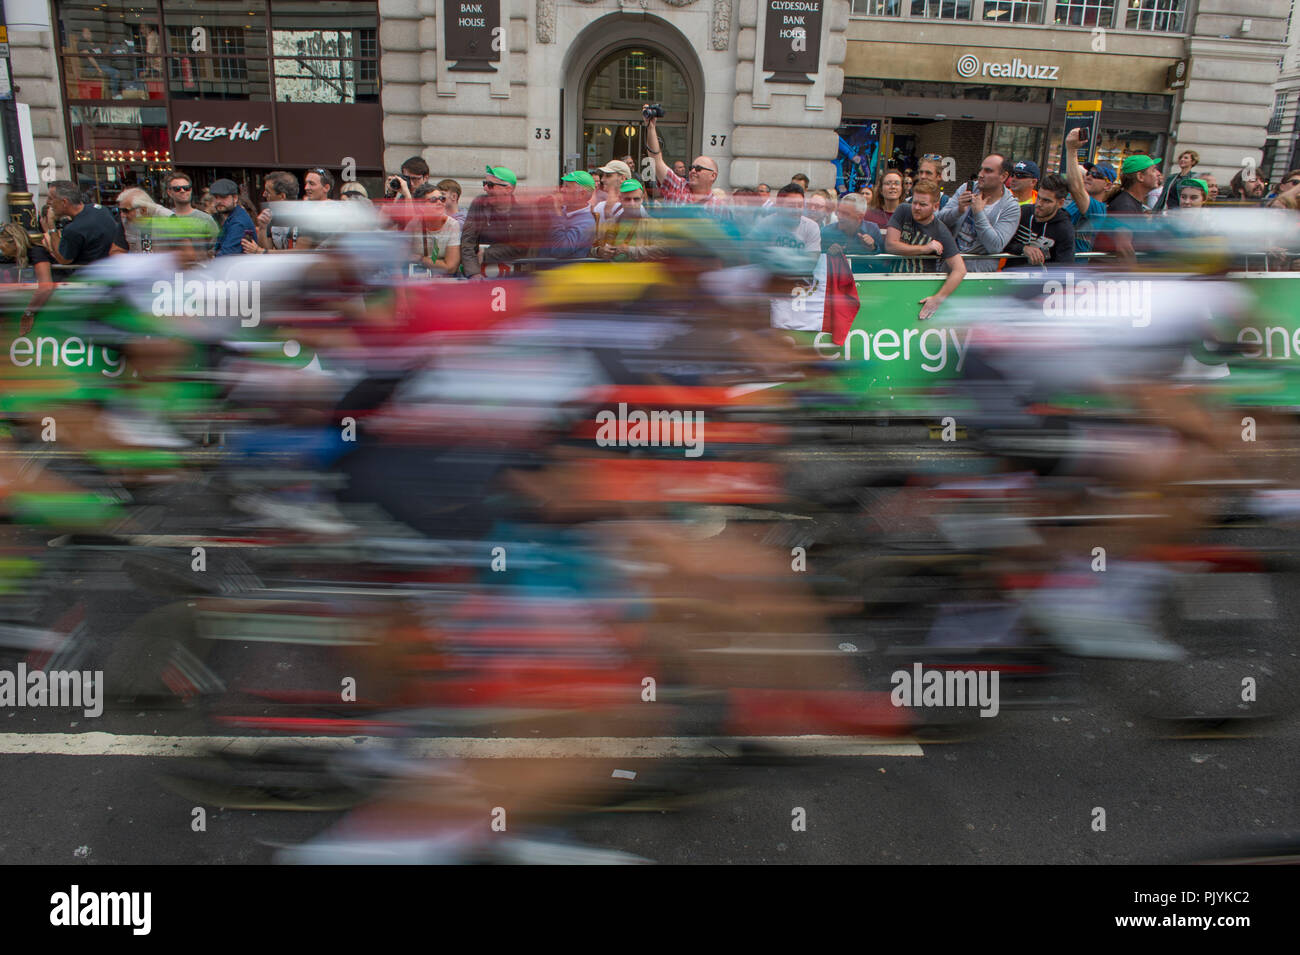 London, UK. 9 September, 2018. The OVO Energy Tour of Britain London Stage 8 concludes with a 14 lap circuit in central London on closed roads in front of large crowds and covering 77km at speeds of up to 80kph, starting and finishing on Regent Street St James's close to Piccadilly Circus. Credit: Malcolm Park/Alamy Live News. - Stock Image